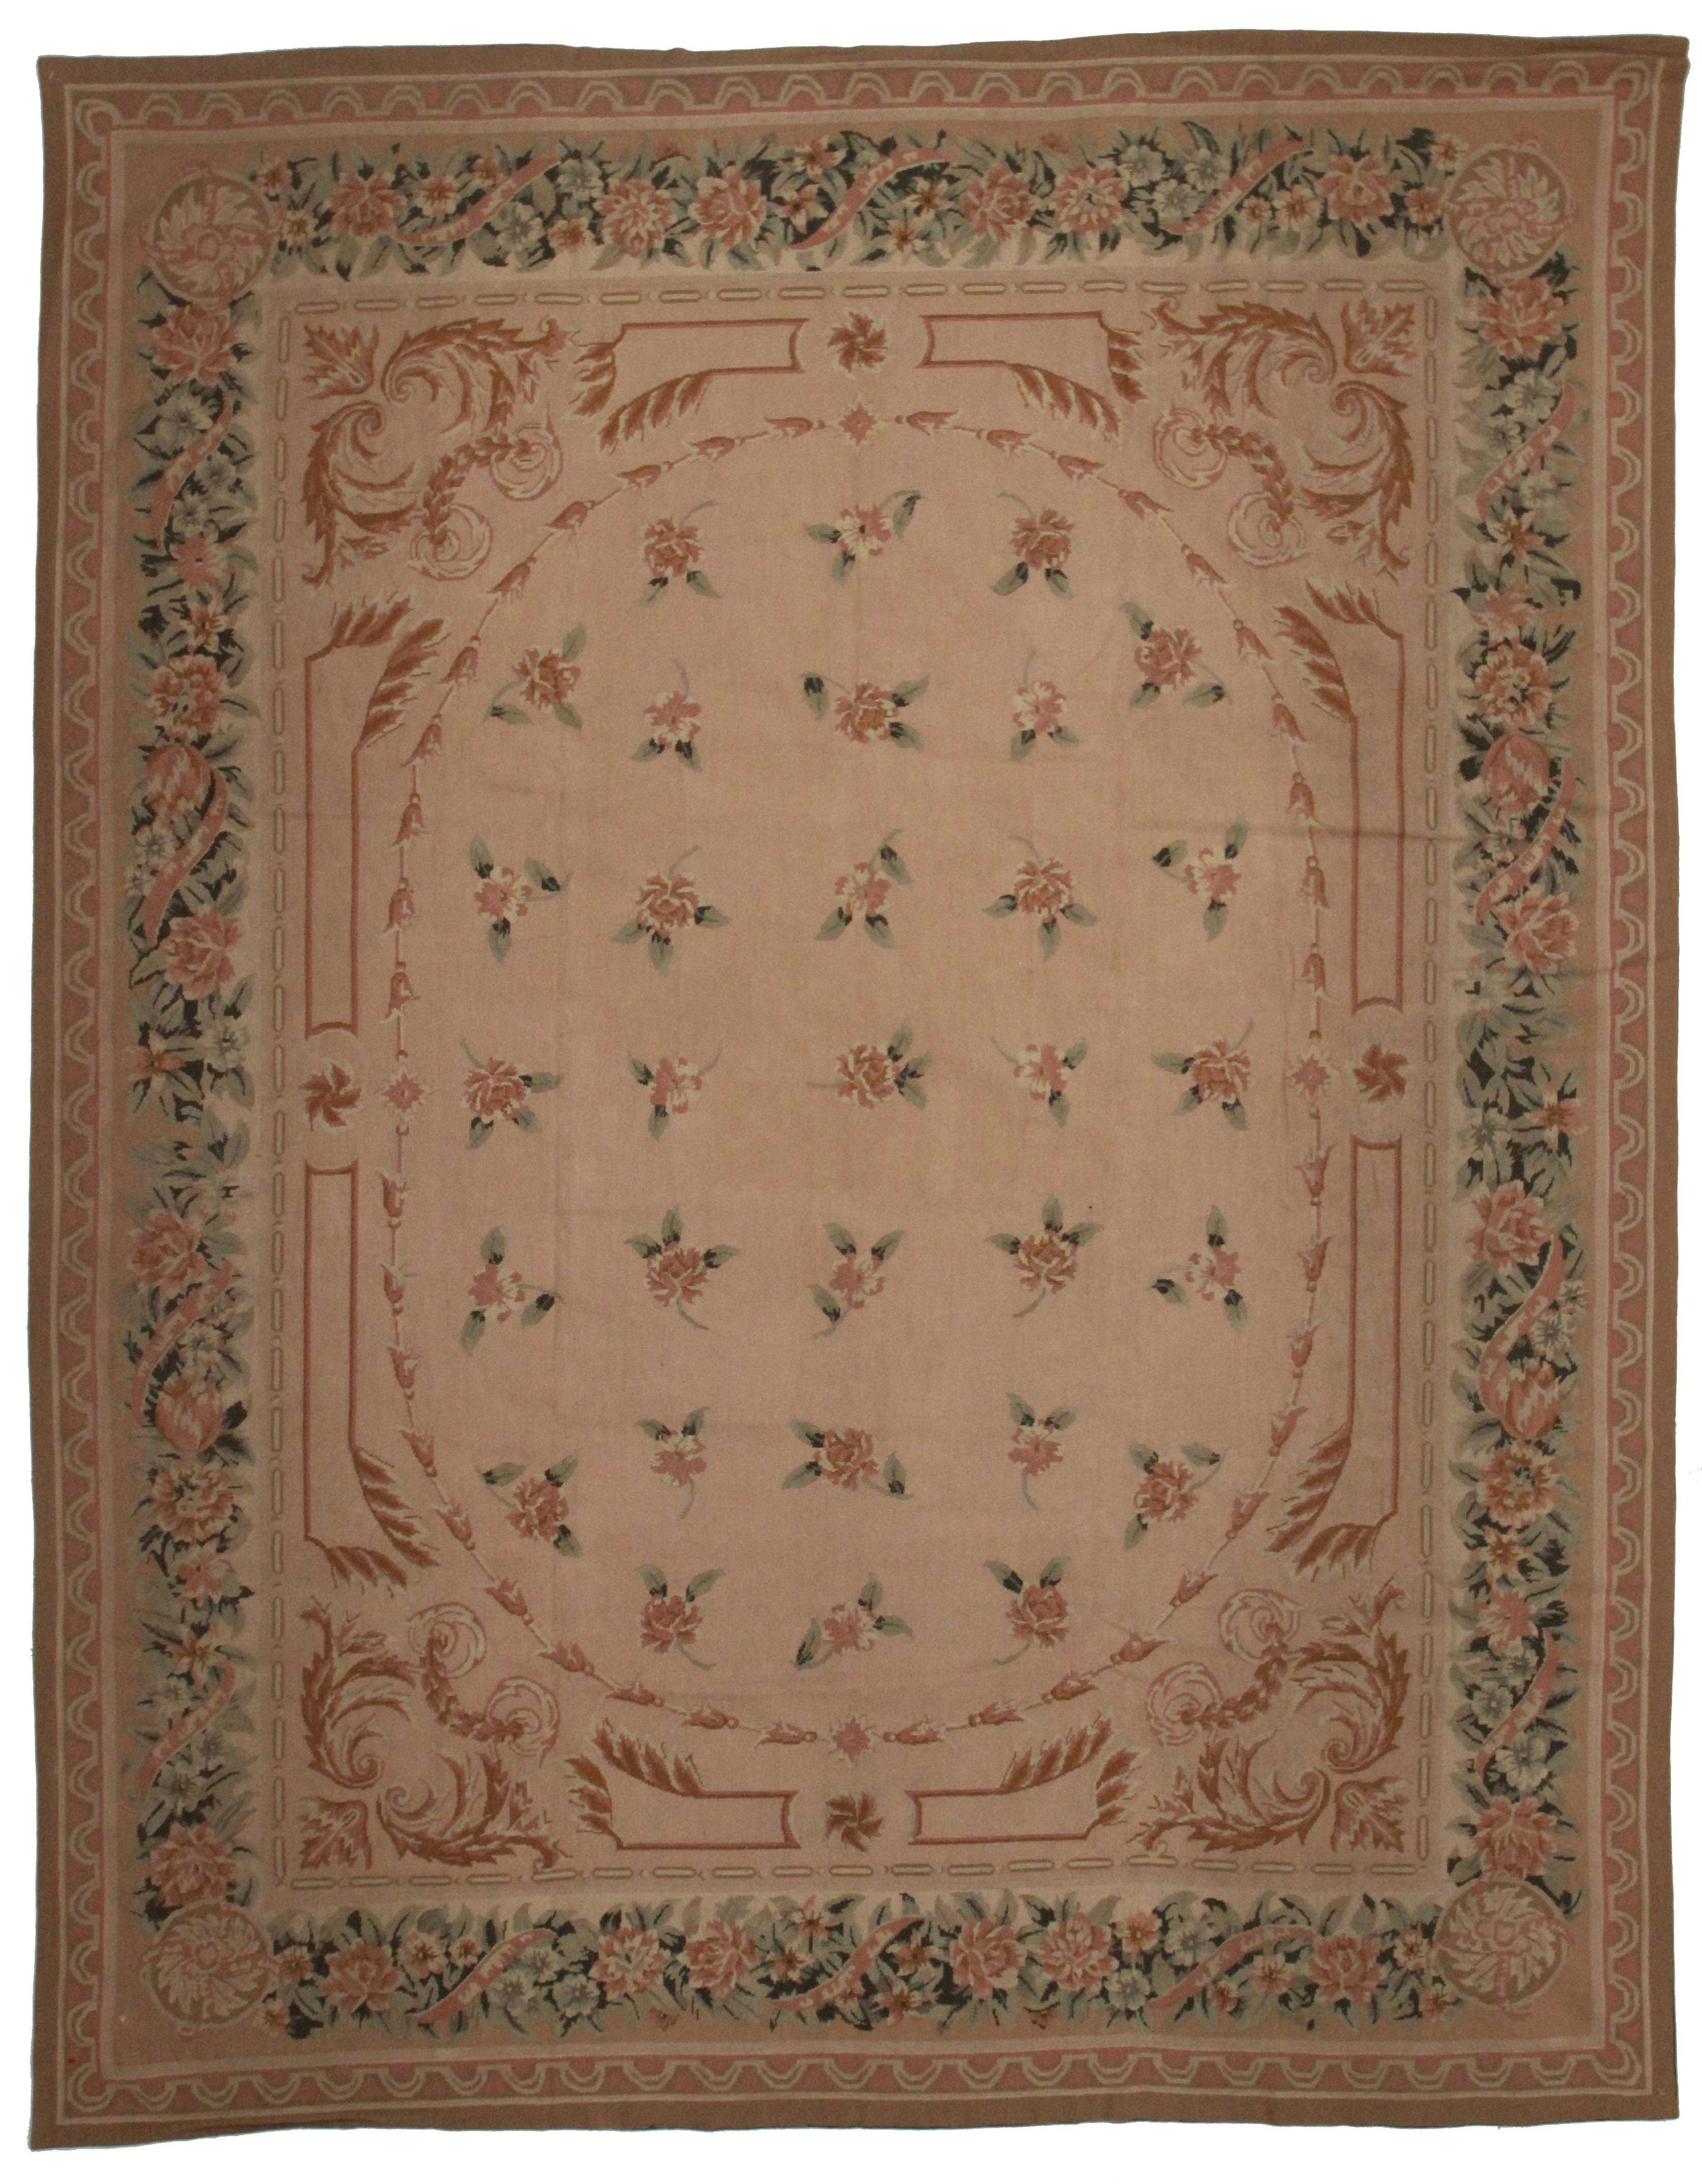 8 X 10 Vintage French Aubusson Needlepoint Rug